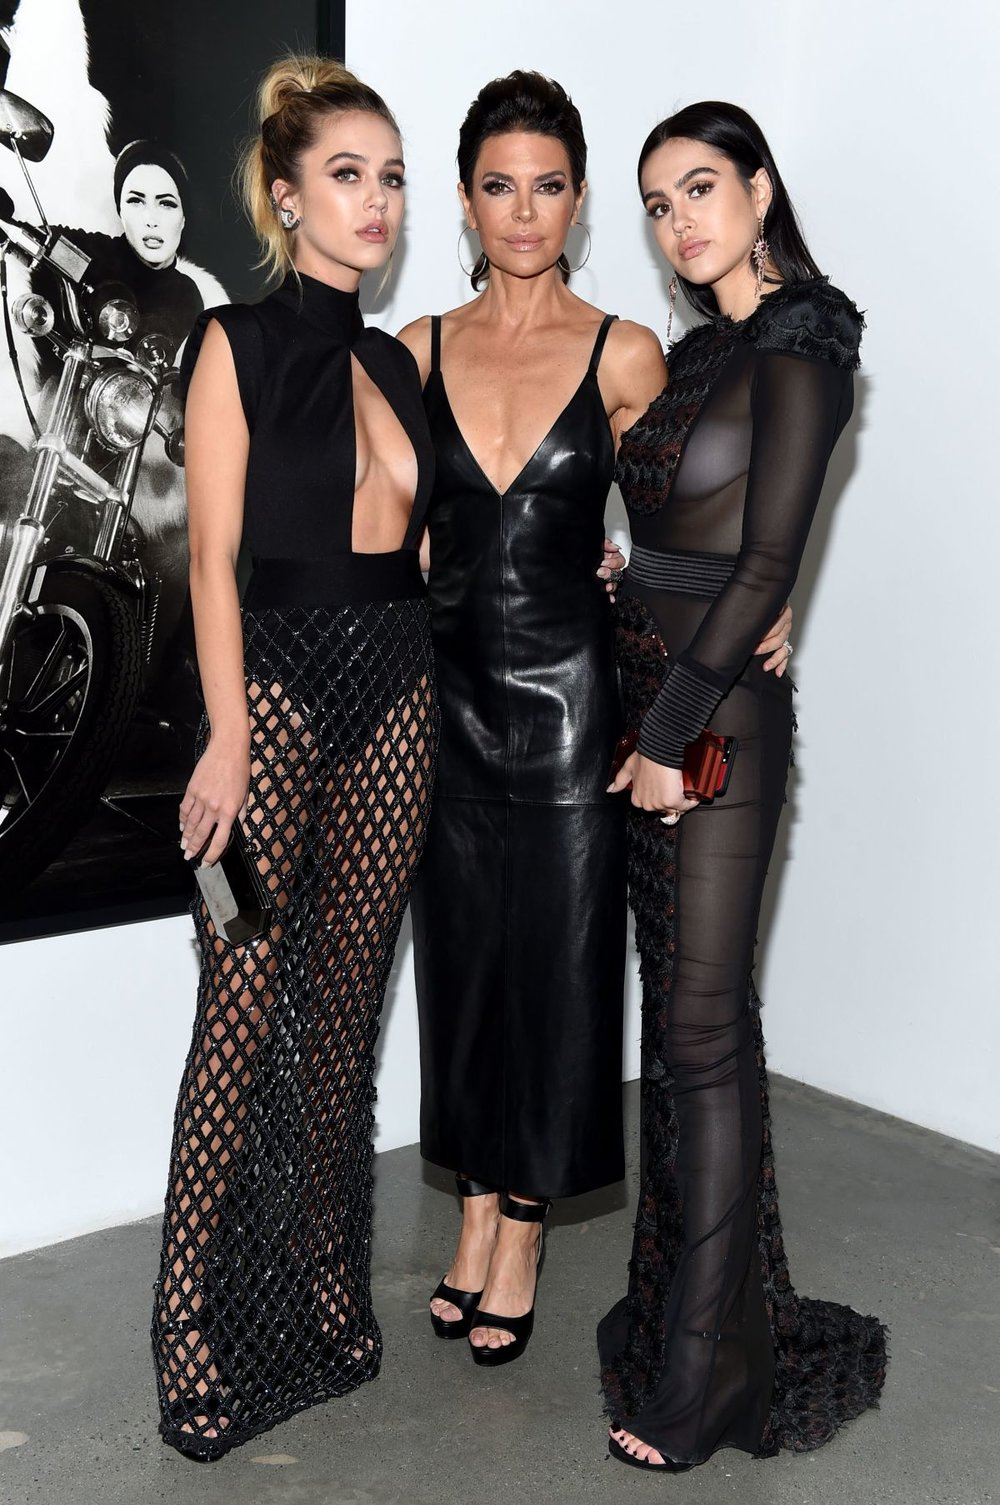 Lisa Rinna (middle) with her two daughters Delilah and Amelia, who are dubbed to be the next Hadid sisters